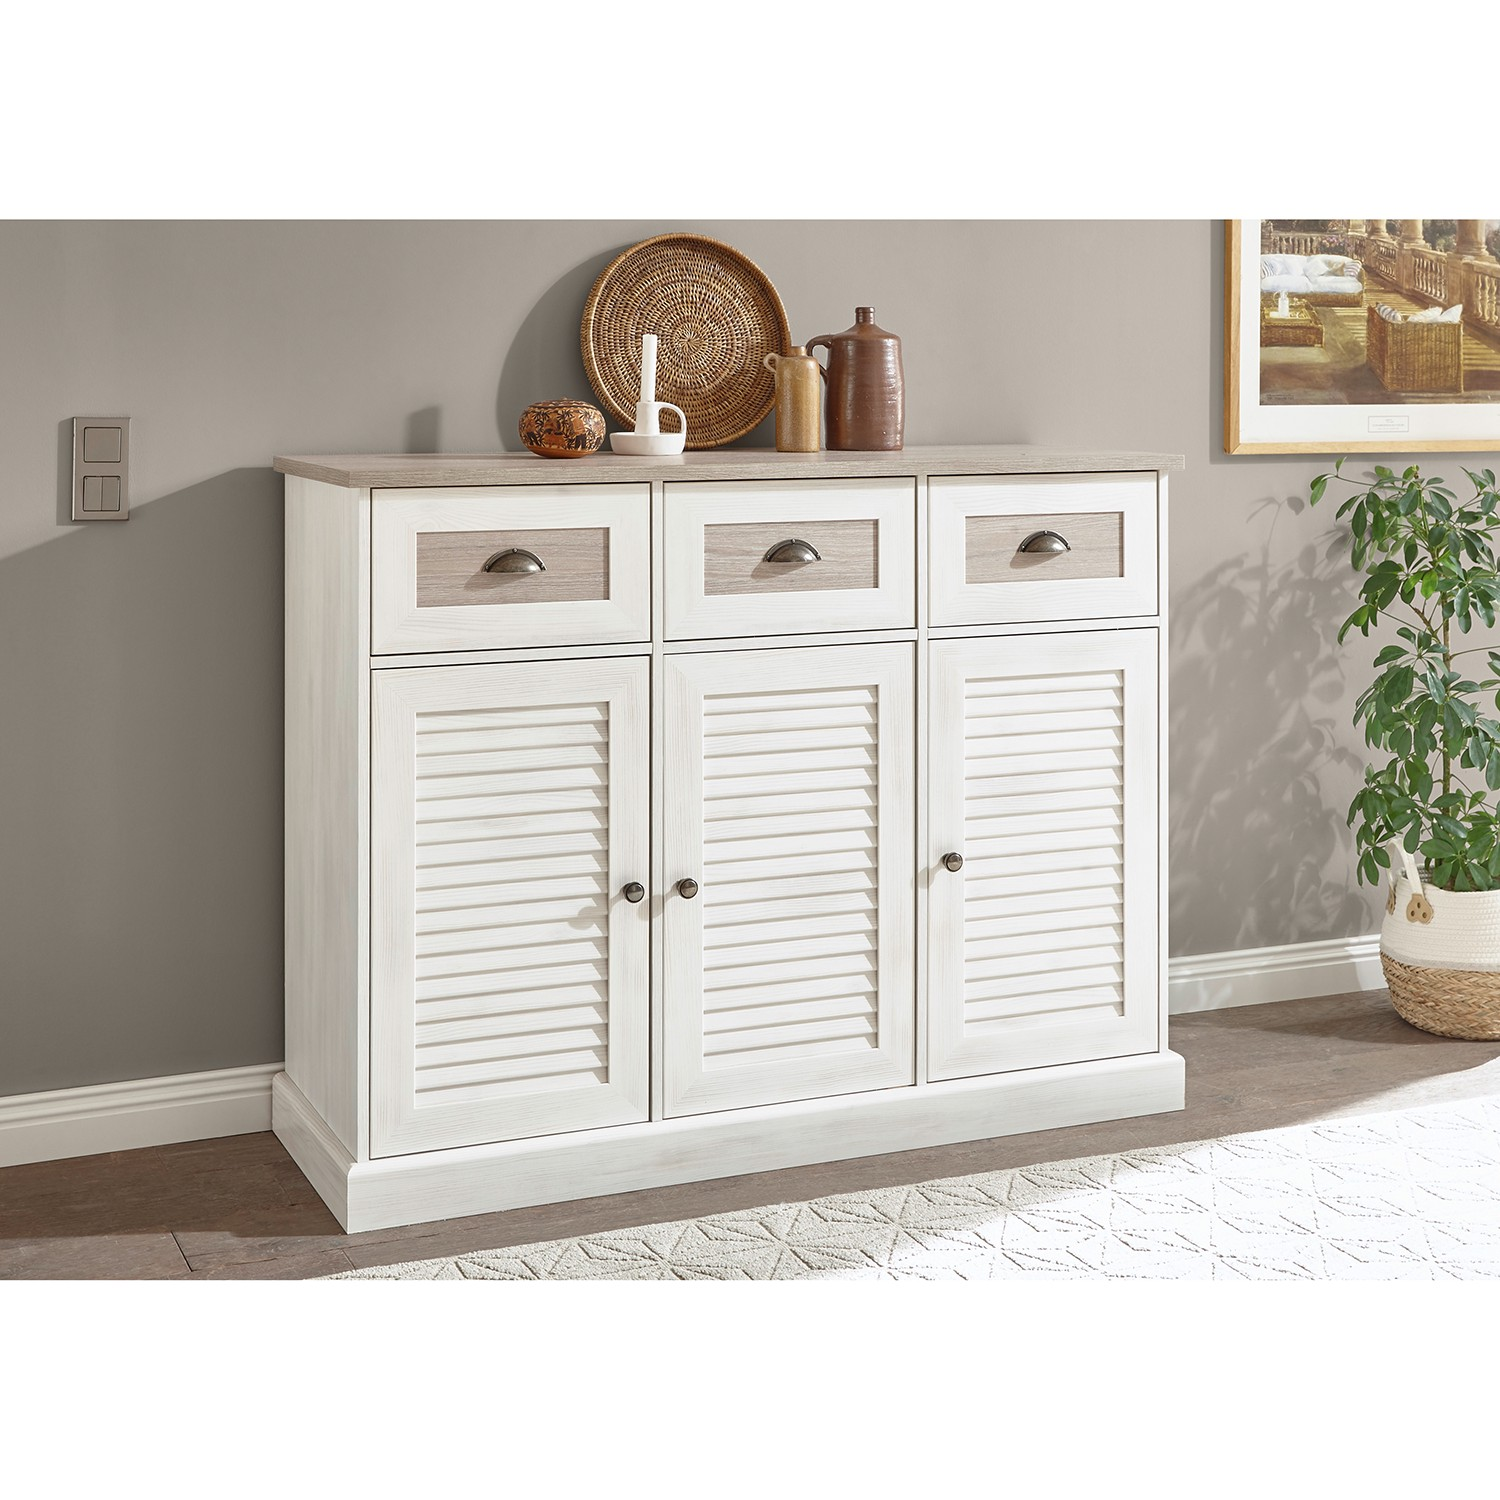 home24 Sideboard Combree I